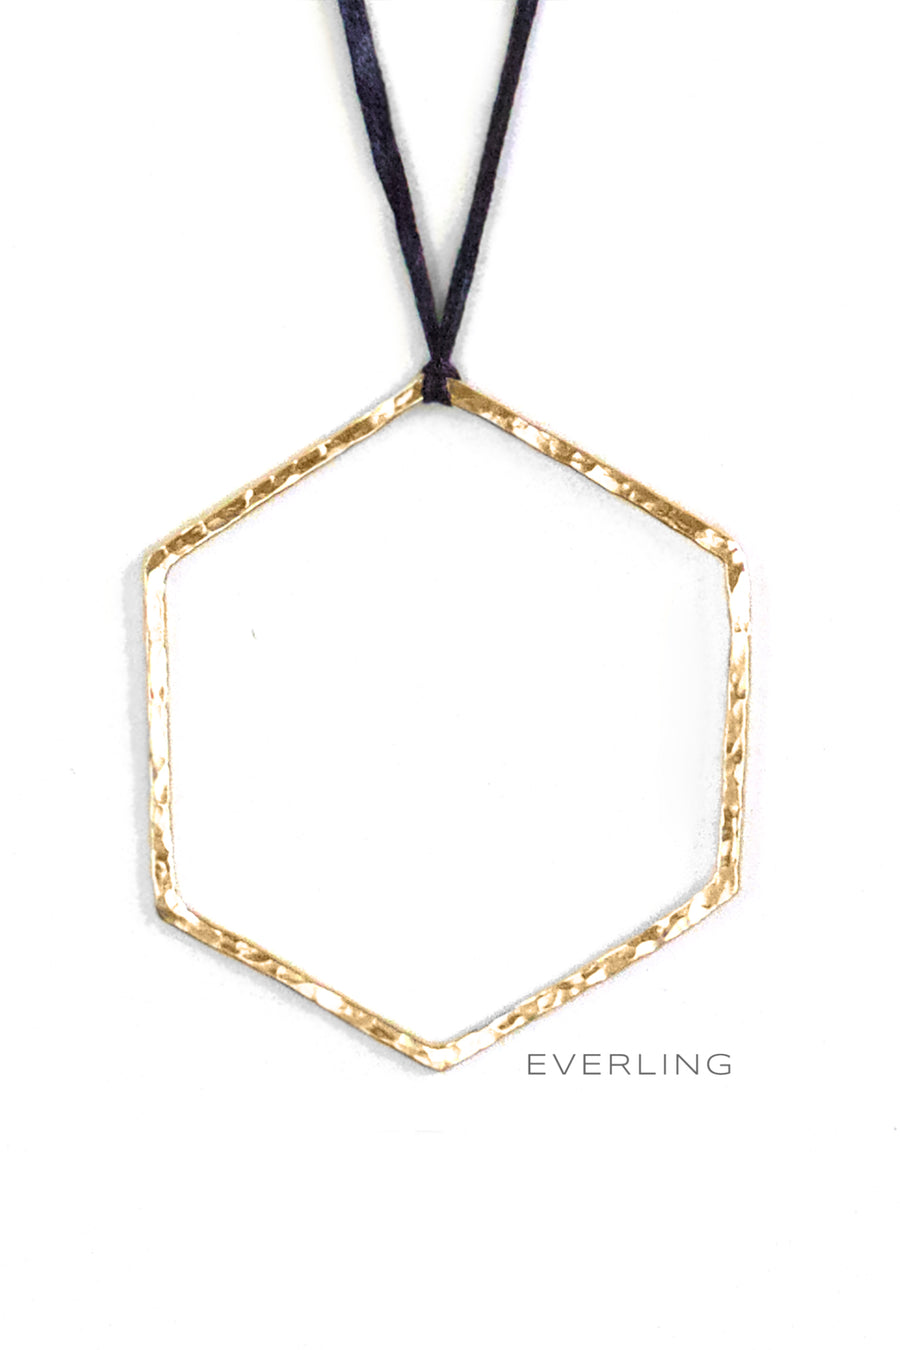 Recycled 14K Yellow Gold Hammer Textured Hexagon Pendant #hexagon #geometricjewelry www.everlingjewelry.com